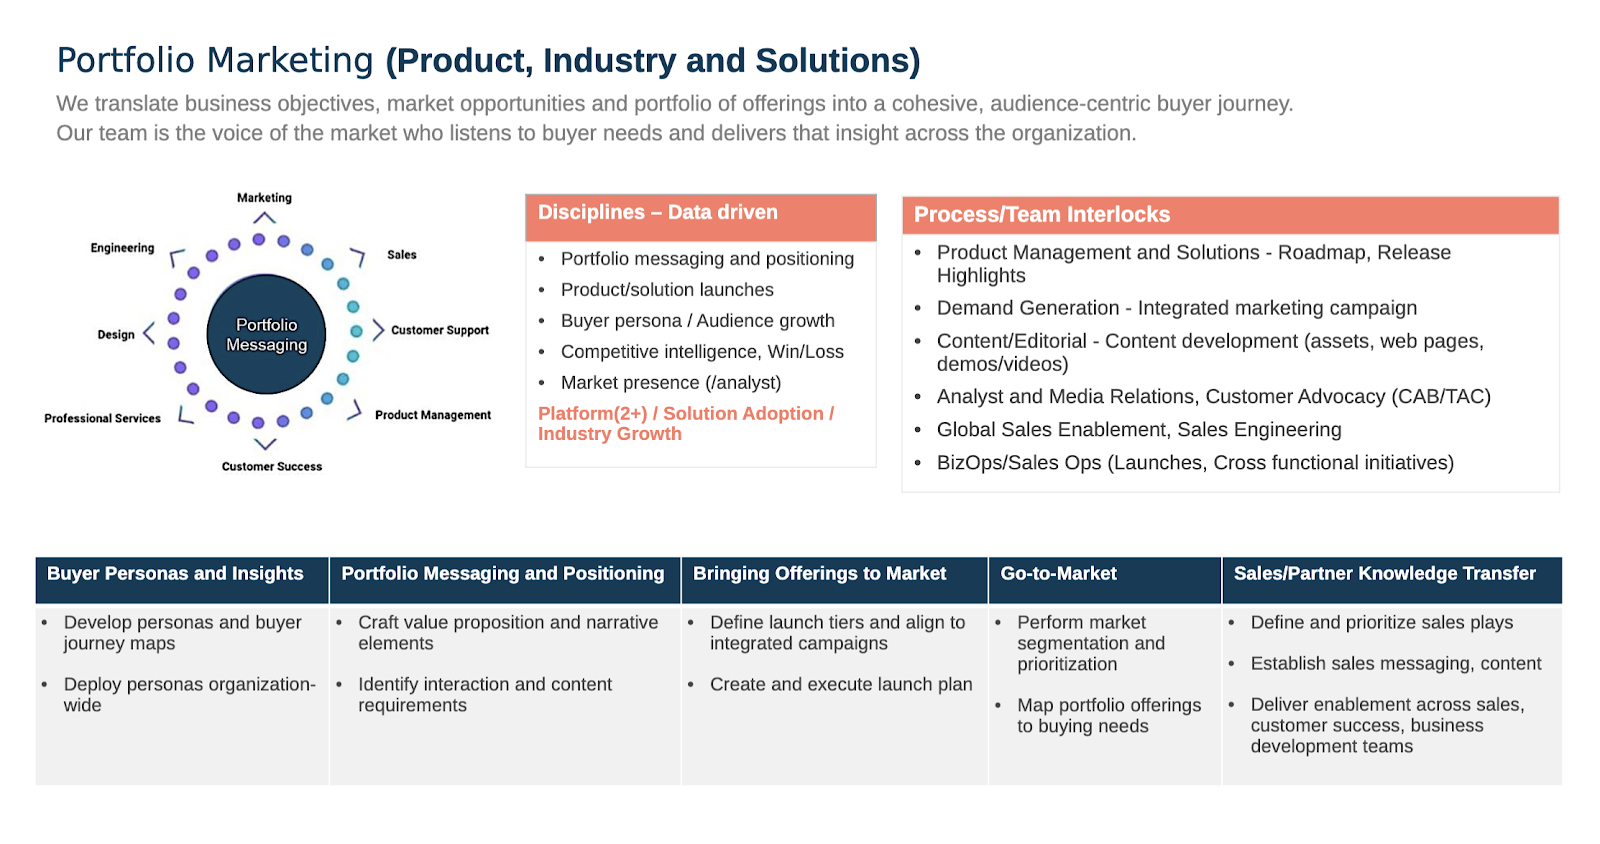 Portfolio marketing in product, industry, and solutions.